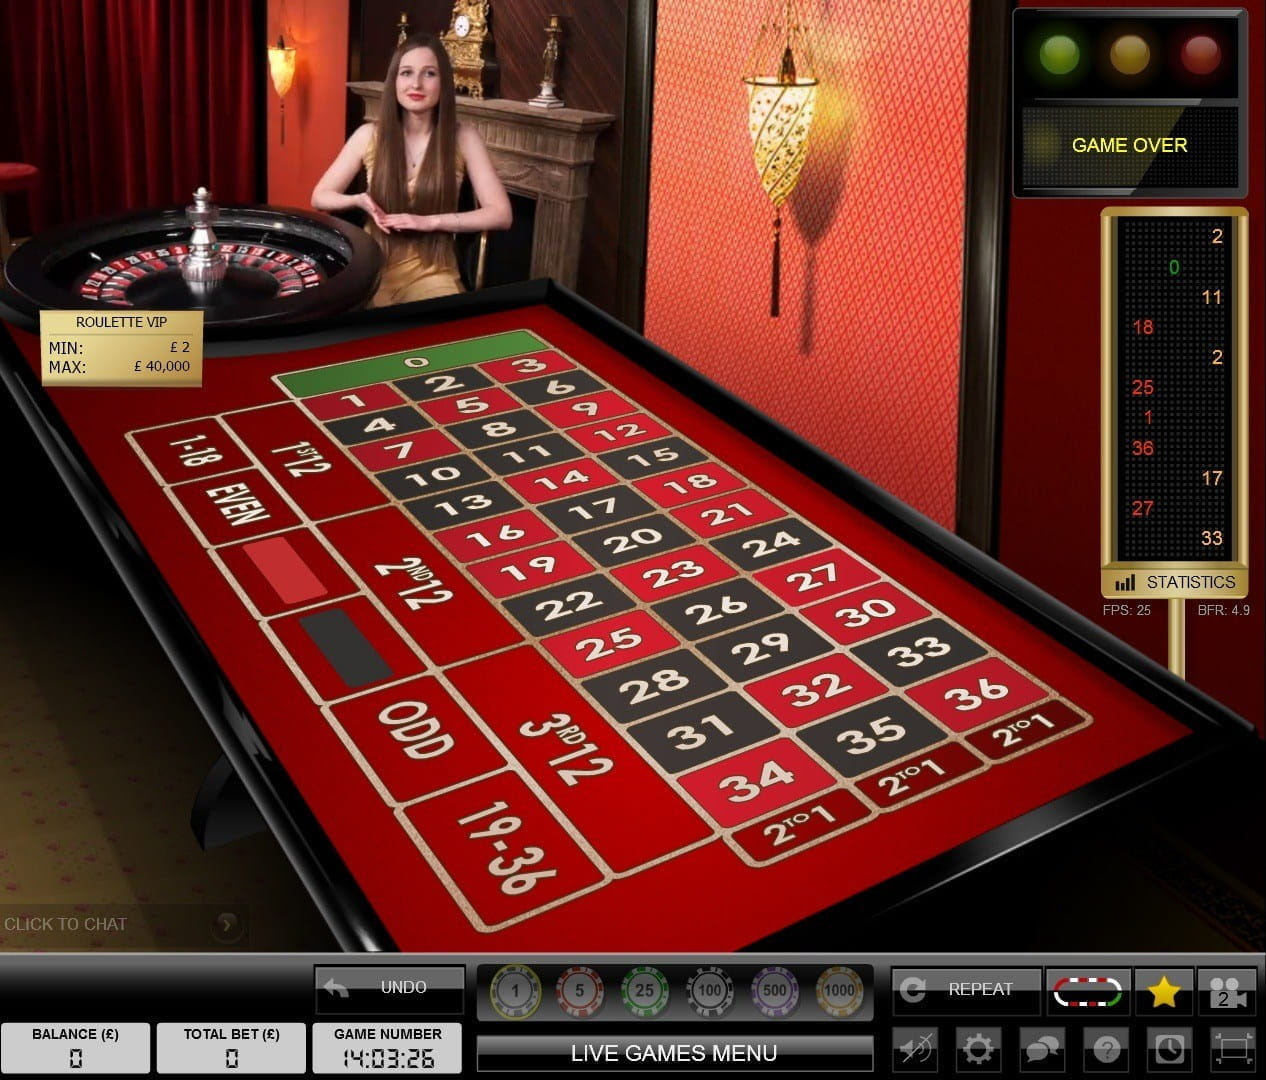 Wins play in italian with live roulette italiana drawing demo